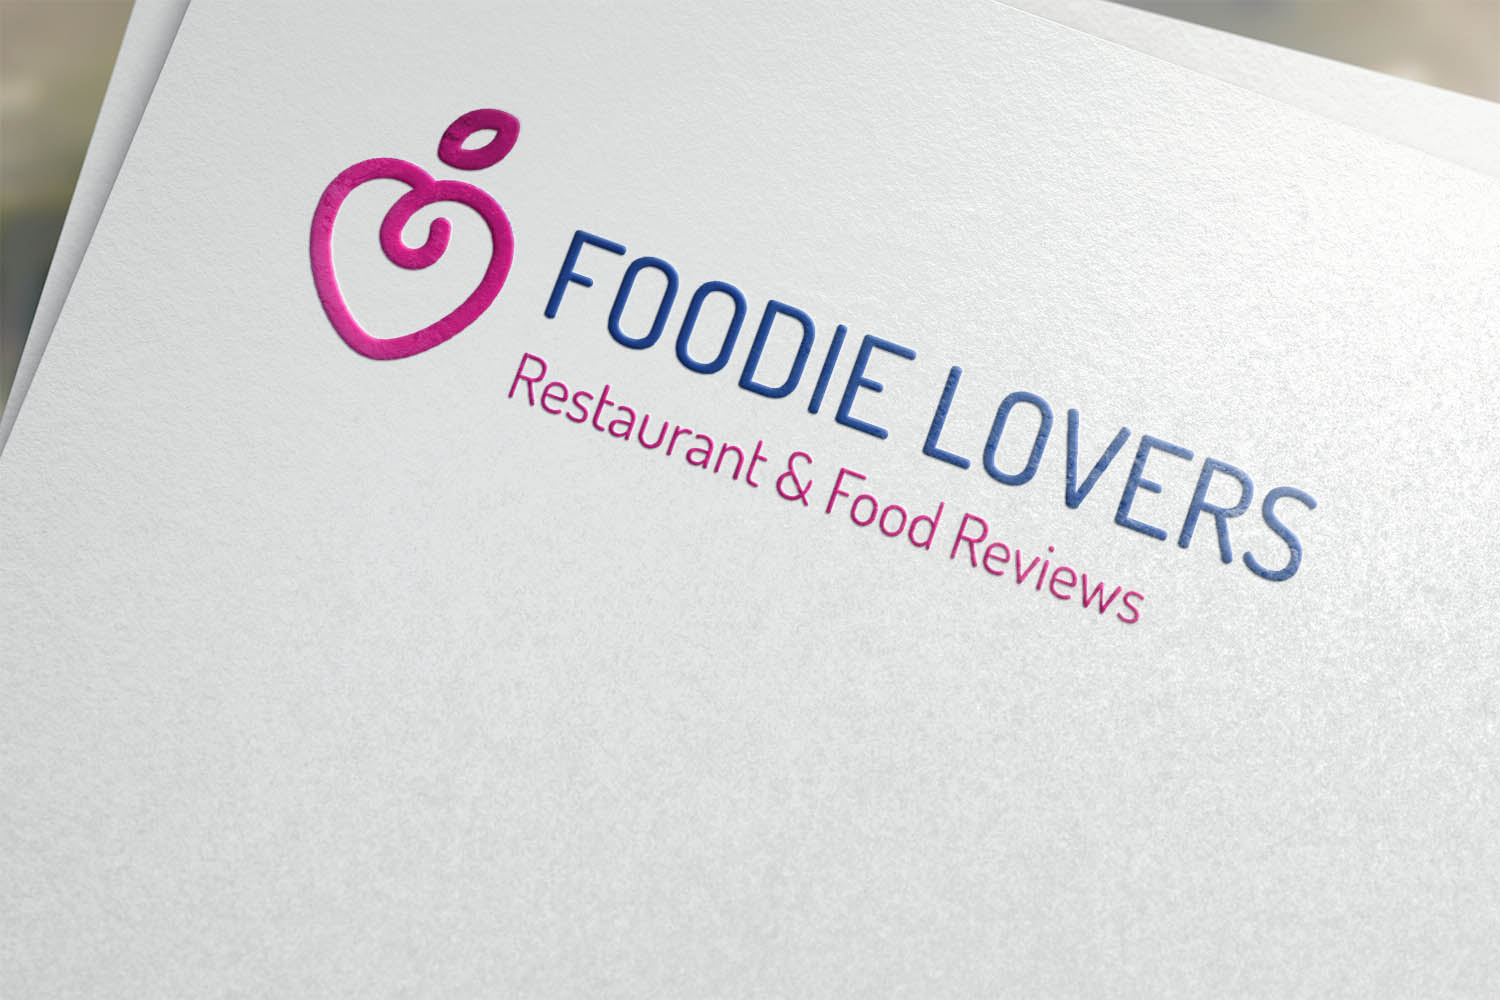 Foodie Lovers Restaurant & Food Reviews Website Design Edinburgh Logo Design The Fearless Creative